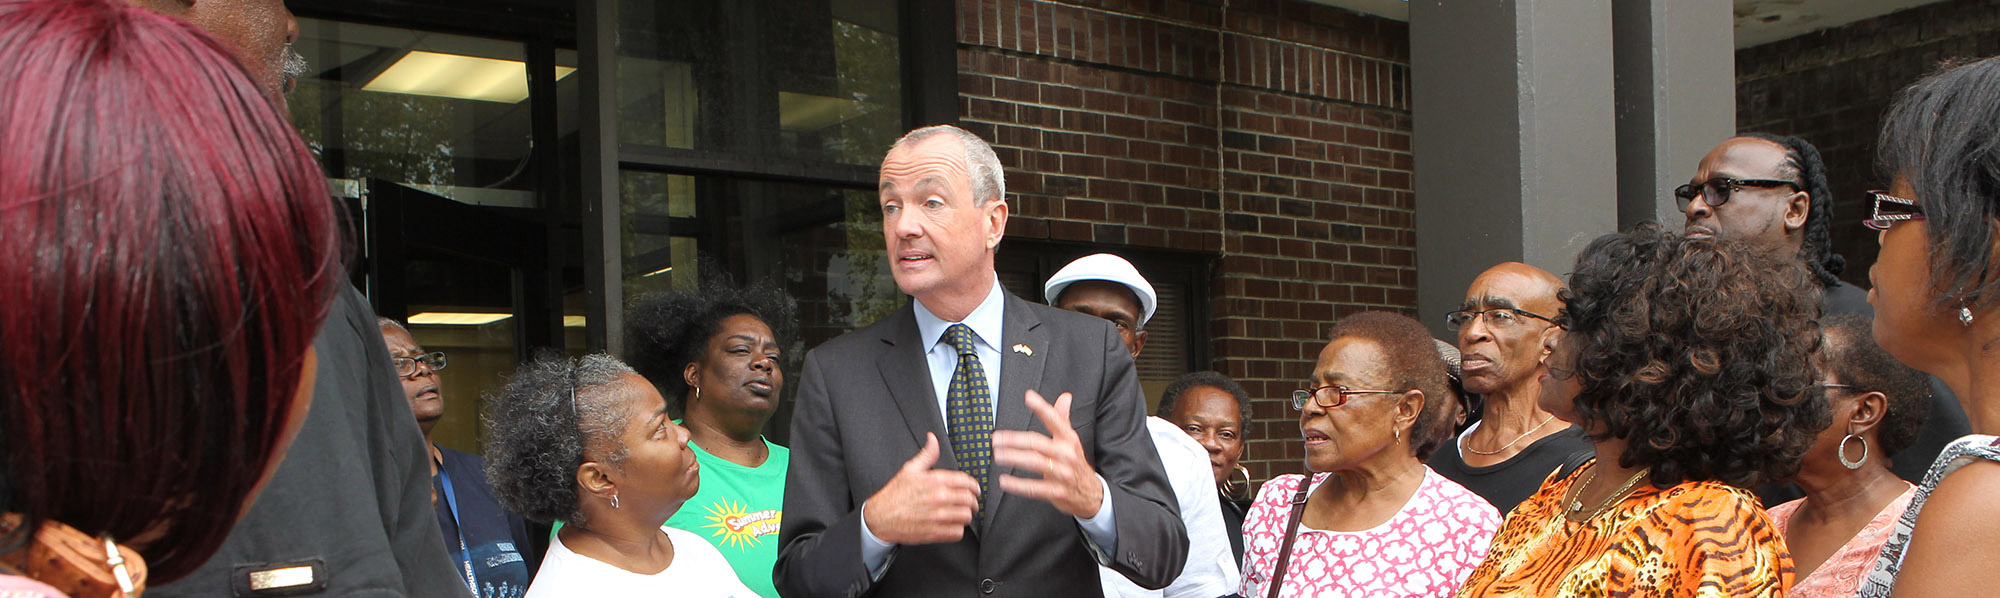 Photo: Phil Murphy talking to group of adults